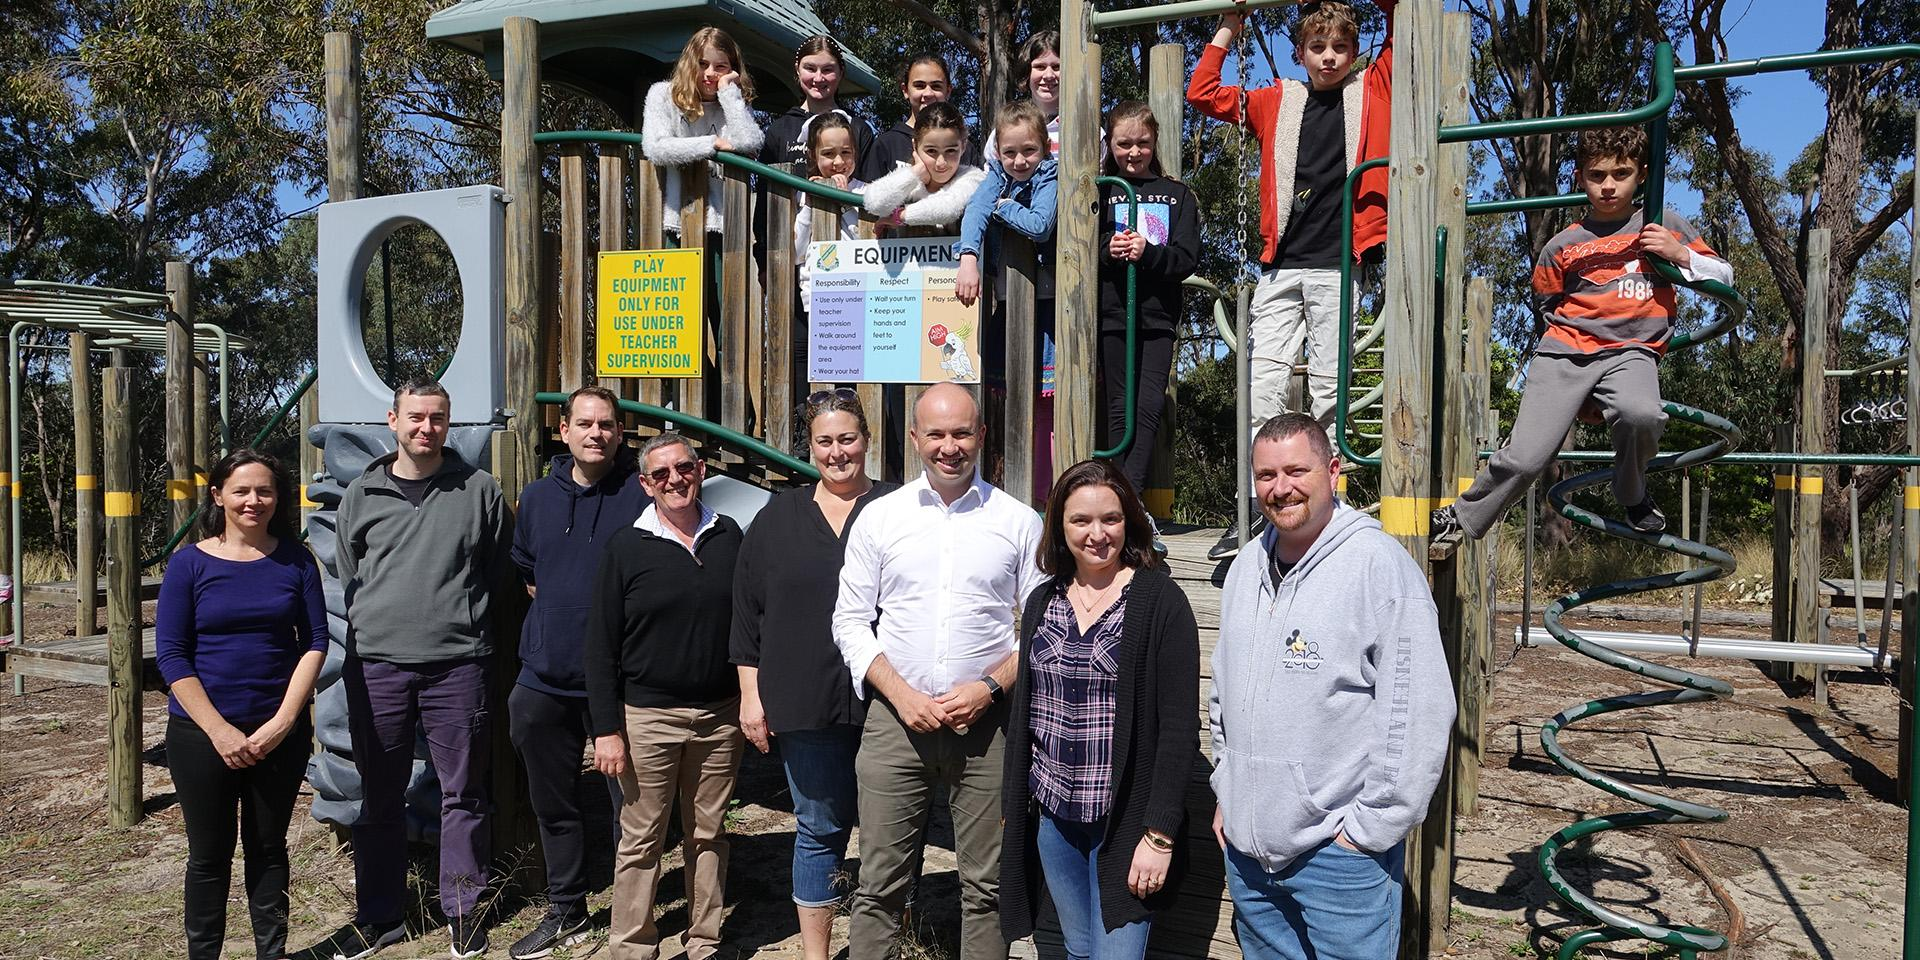 Hornsby Heights Public School celebrates successful application for My Community Project